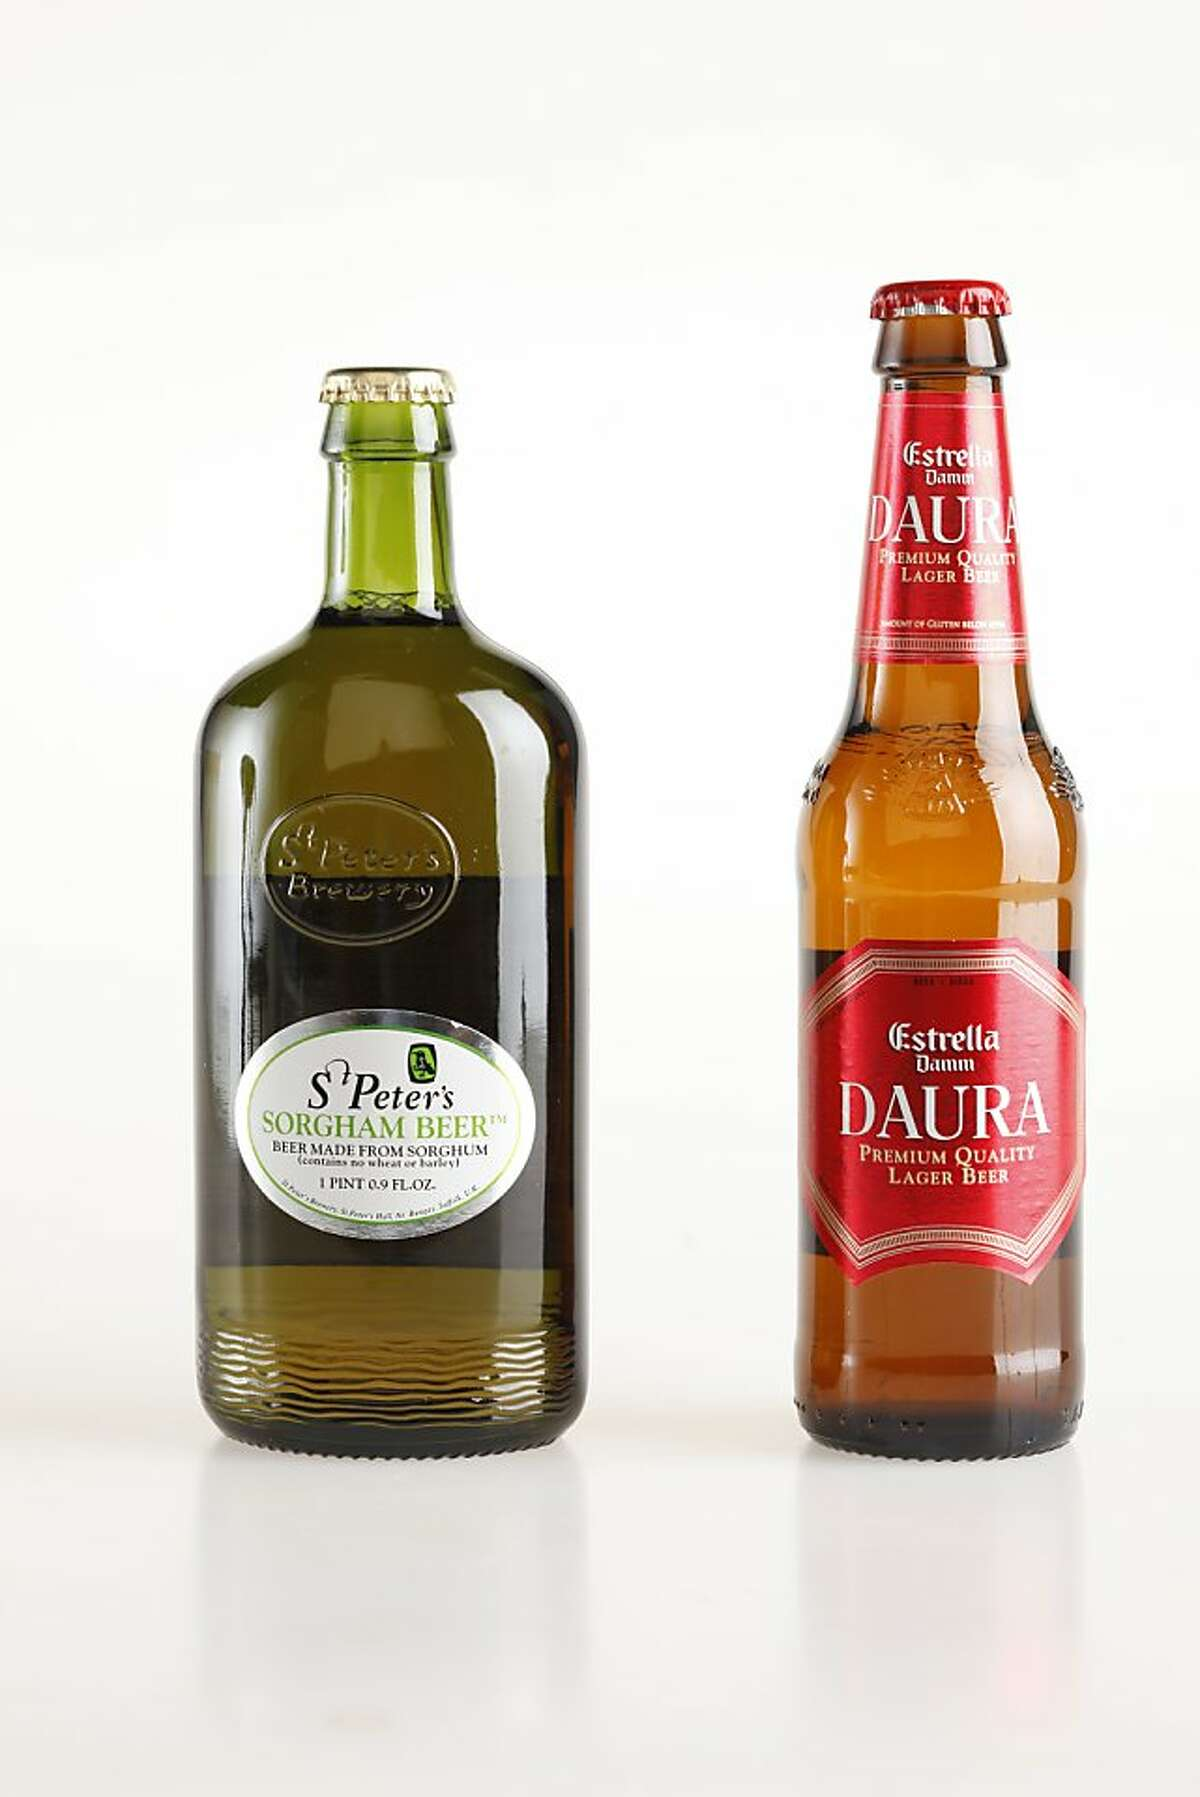 St. Peter's Sorgham Beer, left, and Estrella Damm Daura, Barcelona, Spain.